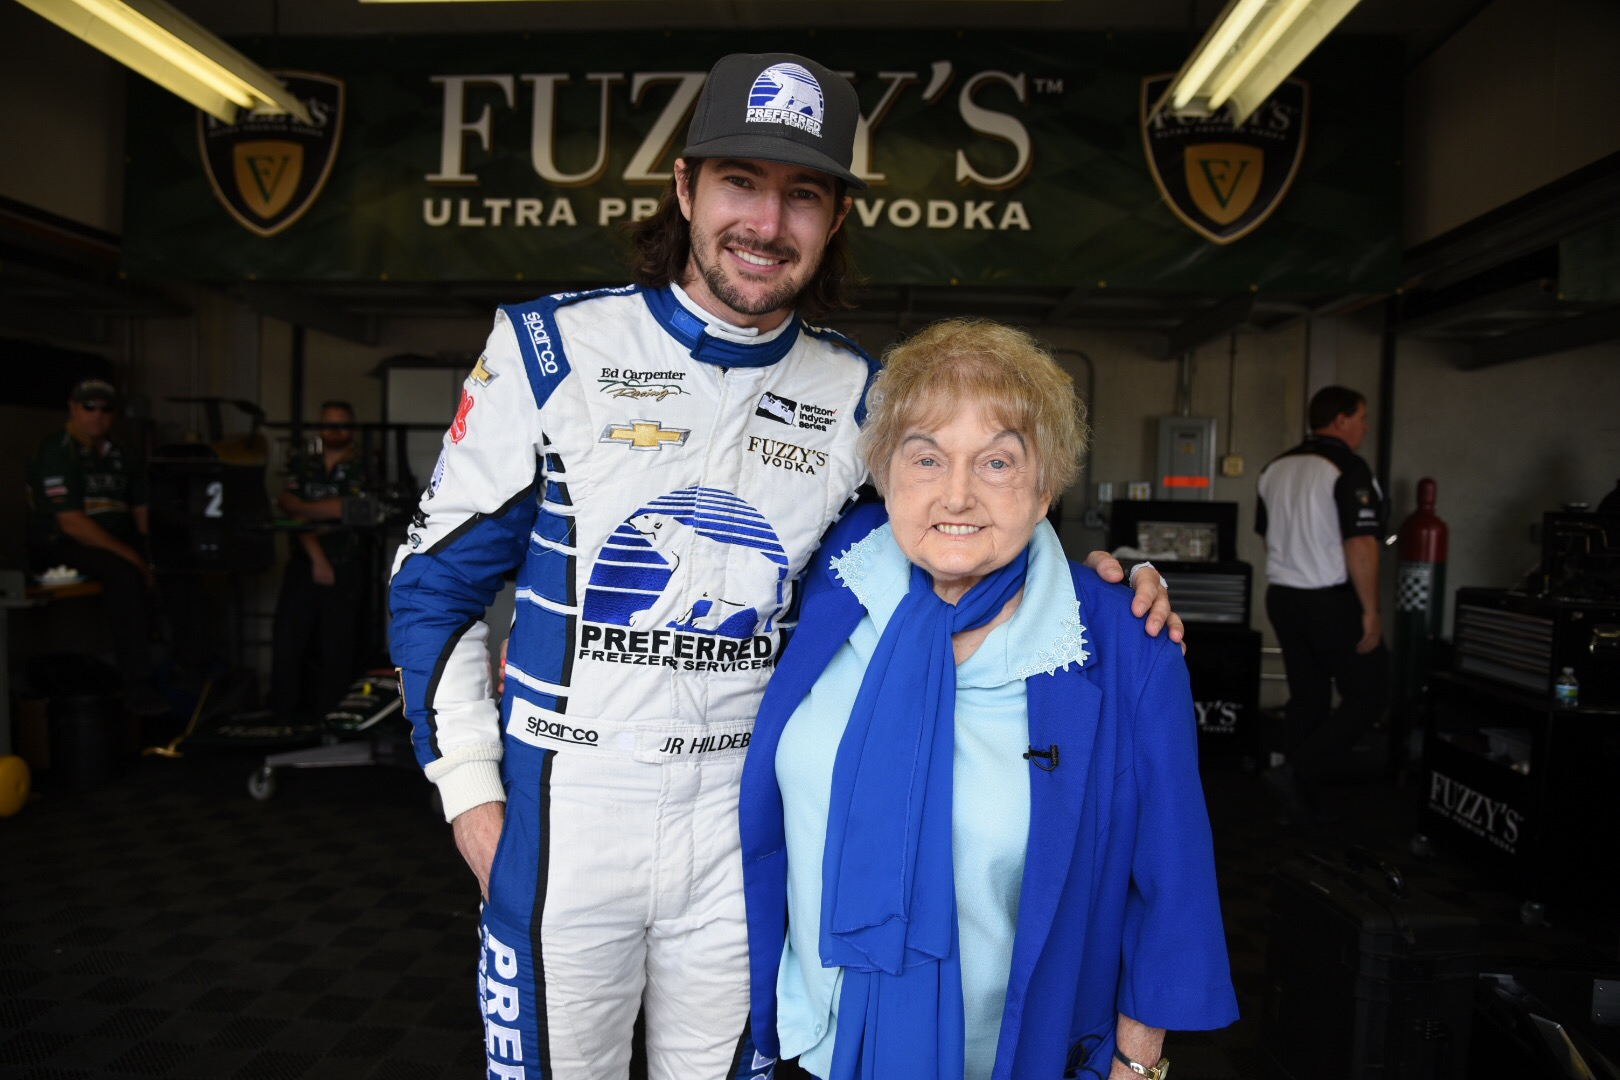 Eva Kor with Indianapolis 500 driver JR Hildebrand.